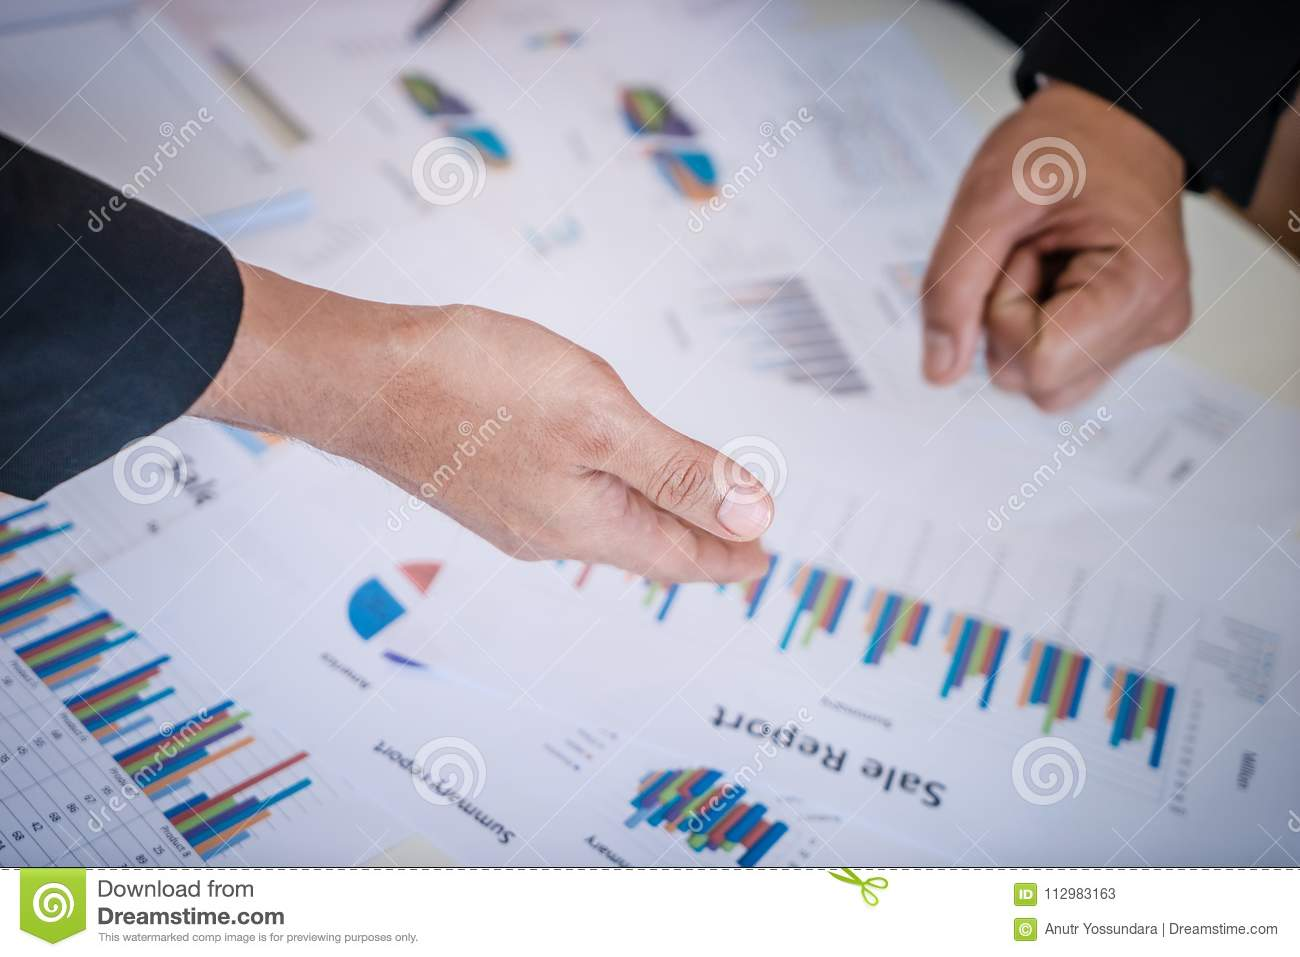 Hands pointing on data chart for business meeting